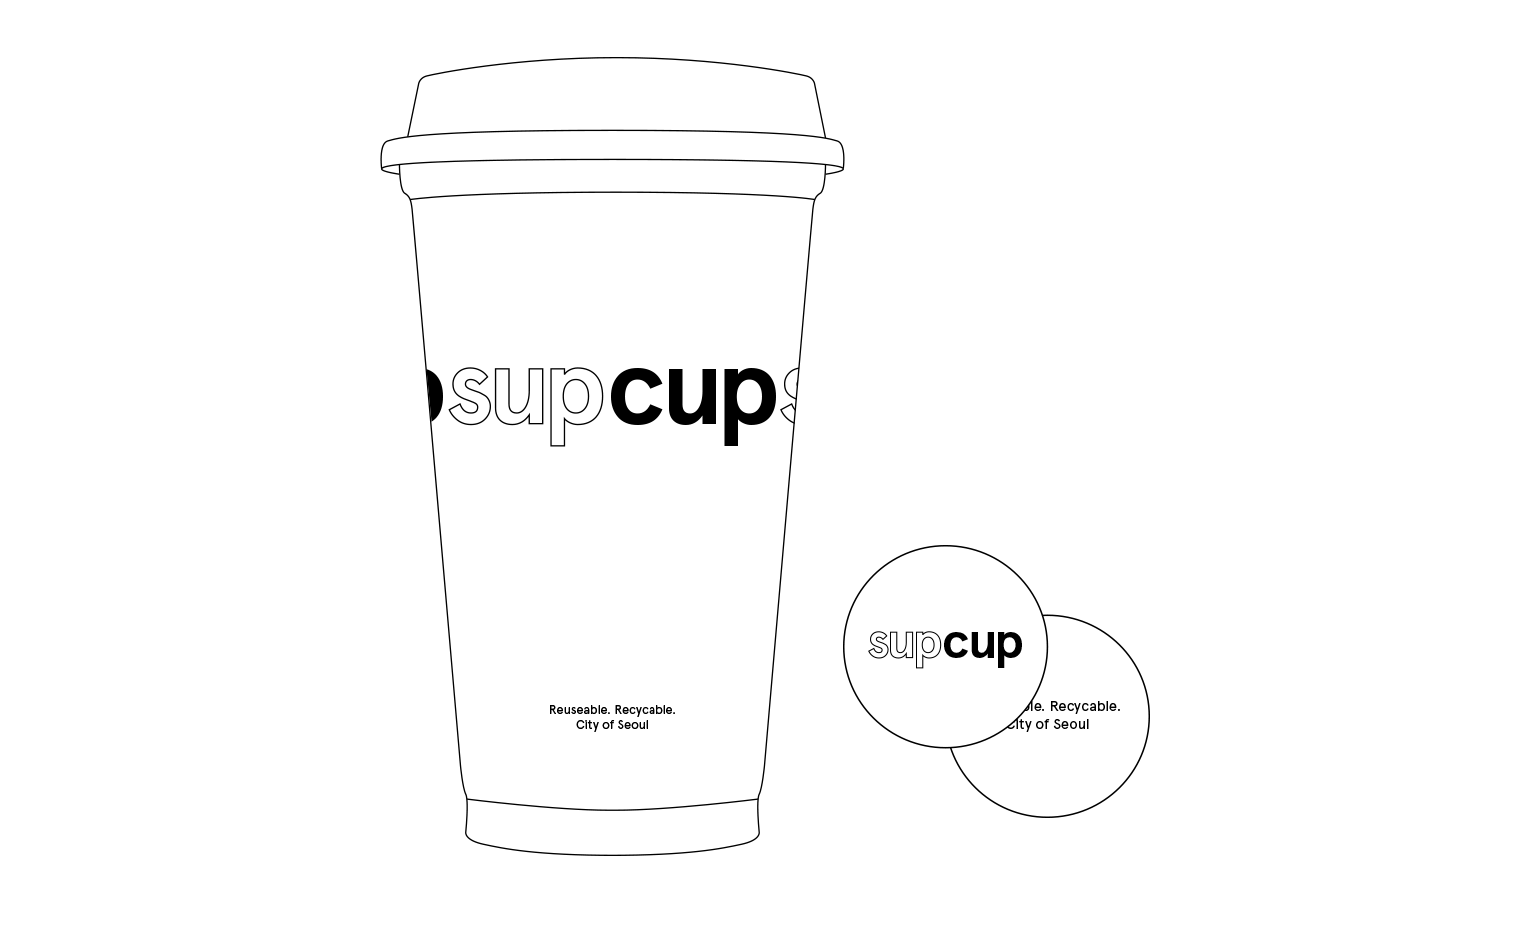 supcup_cup